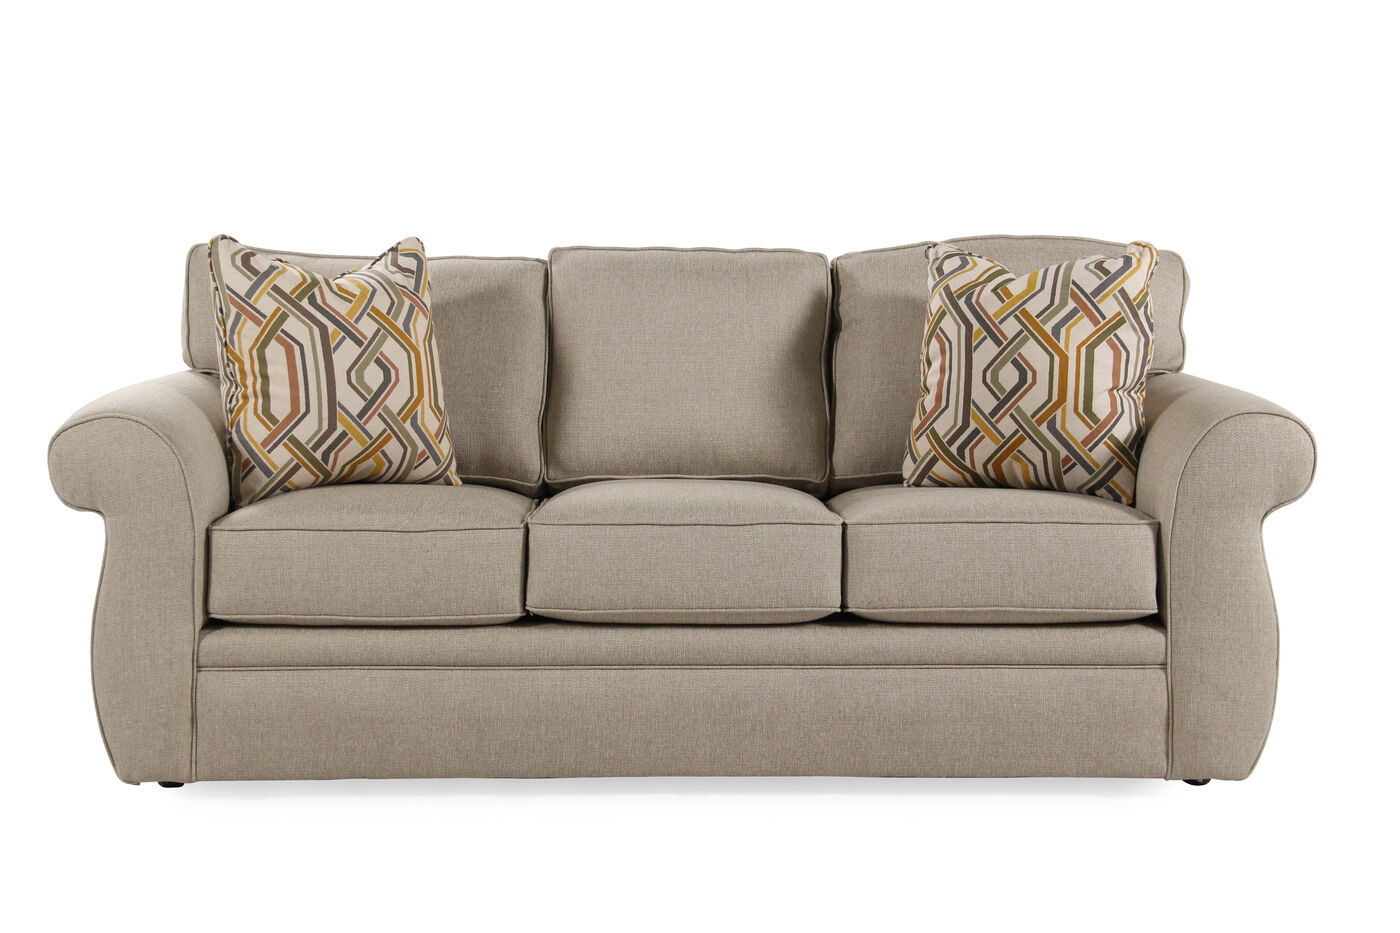 contemporary 87 queen sleeper sofa in latte mathis brothers furniture. Black Bedroom Furniture Sets. Home Design Ideas